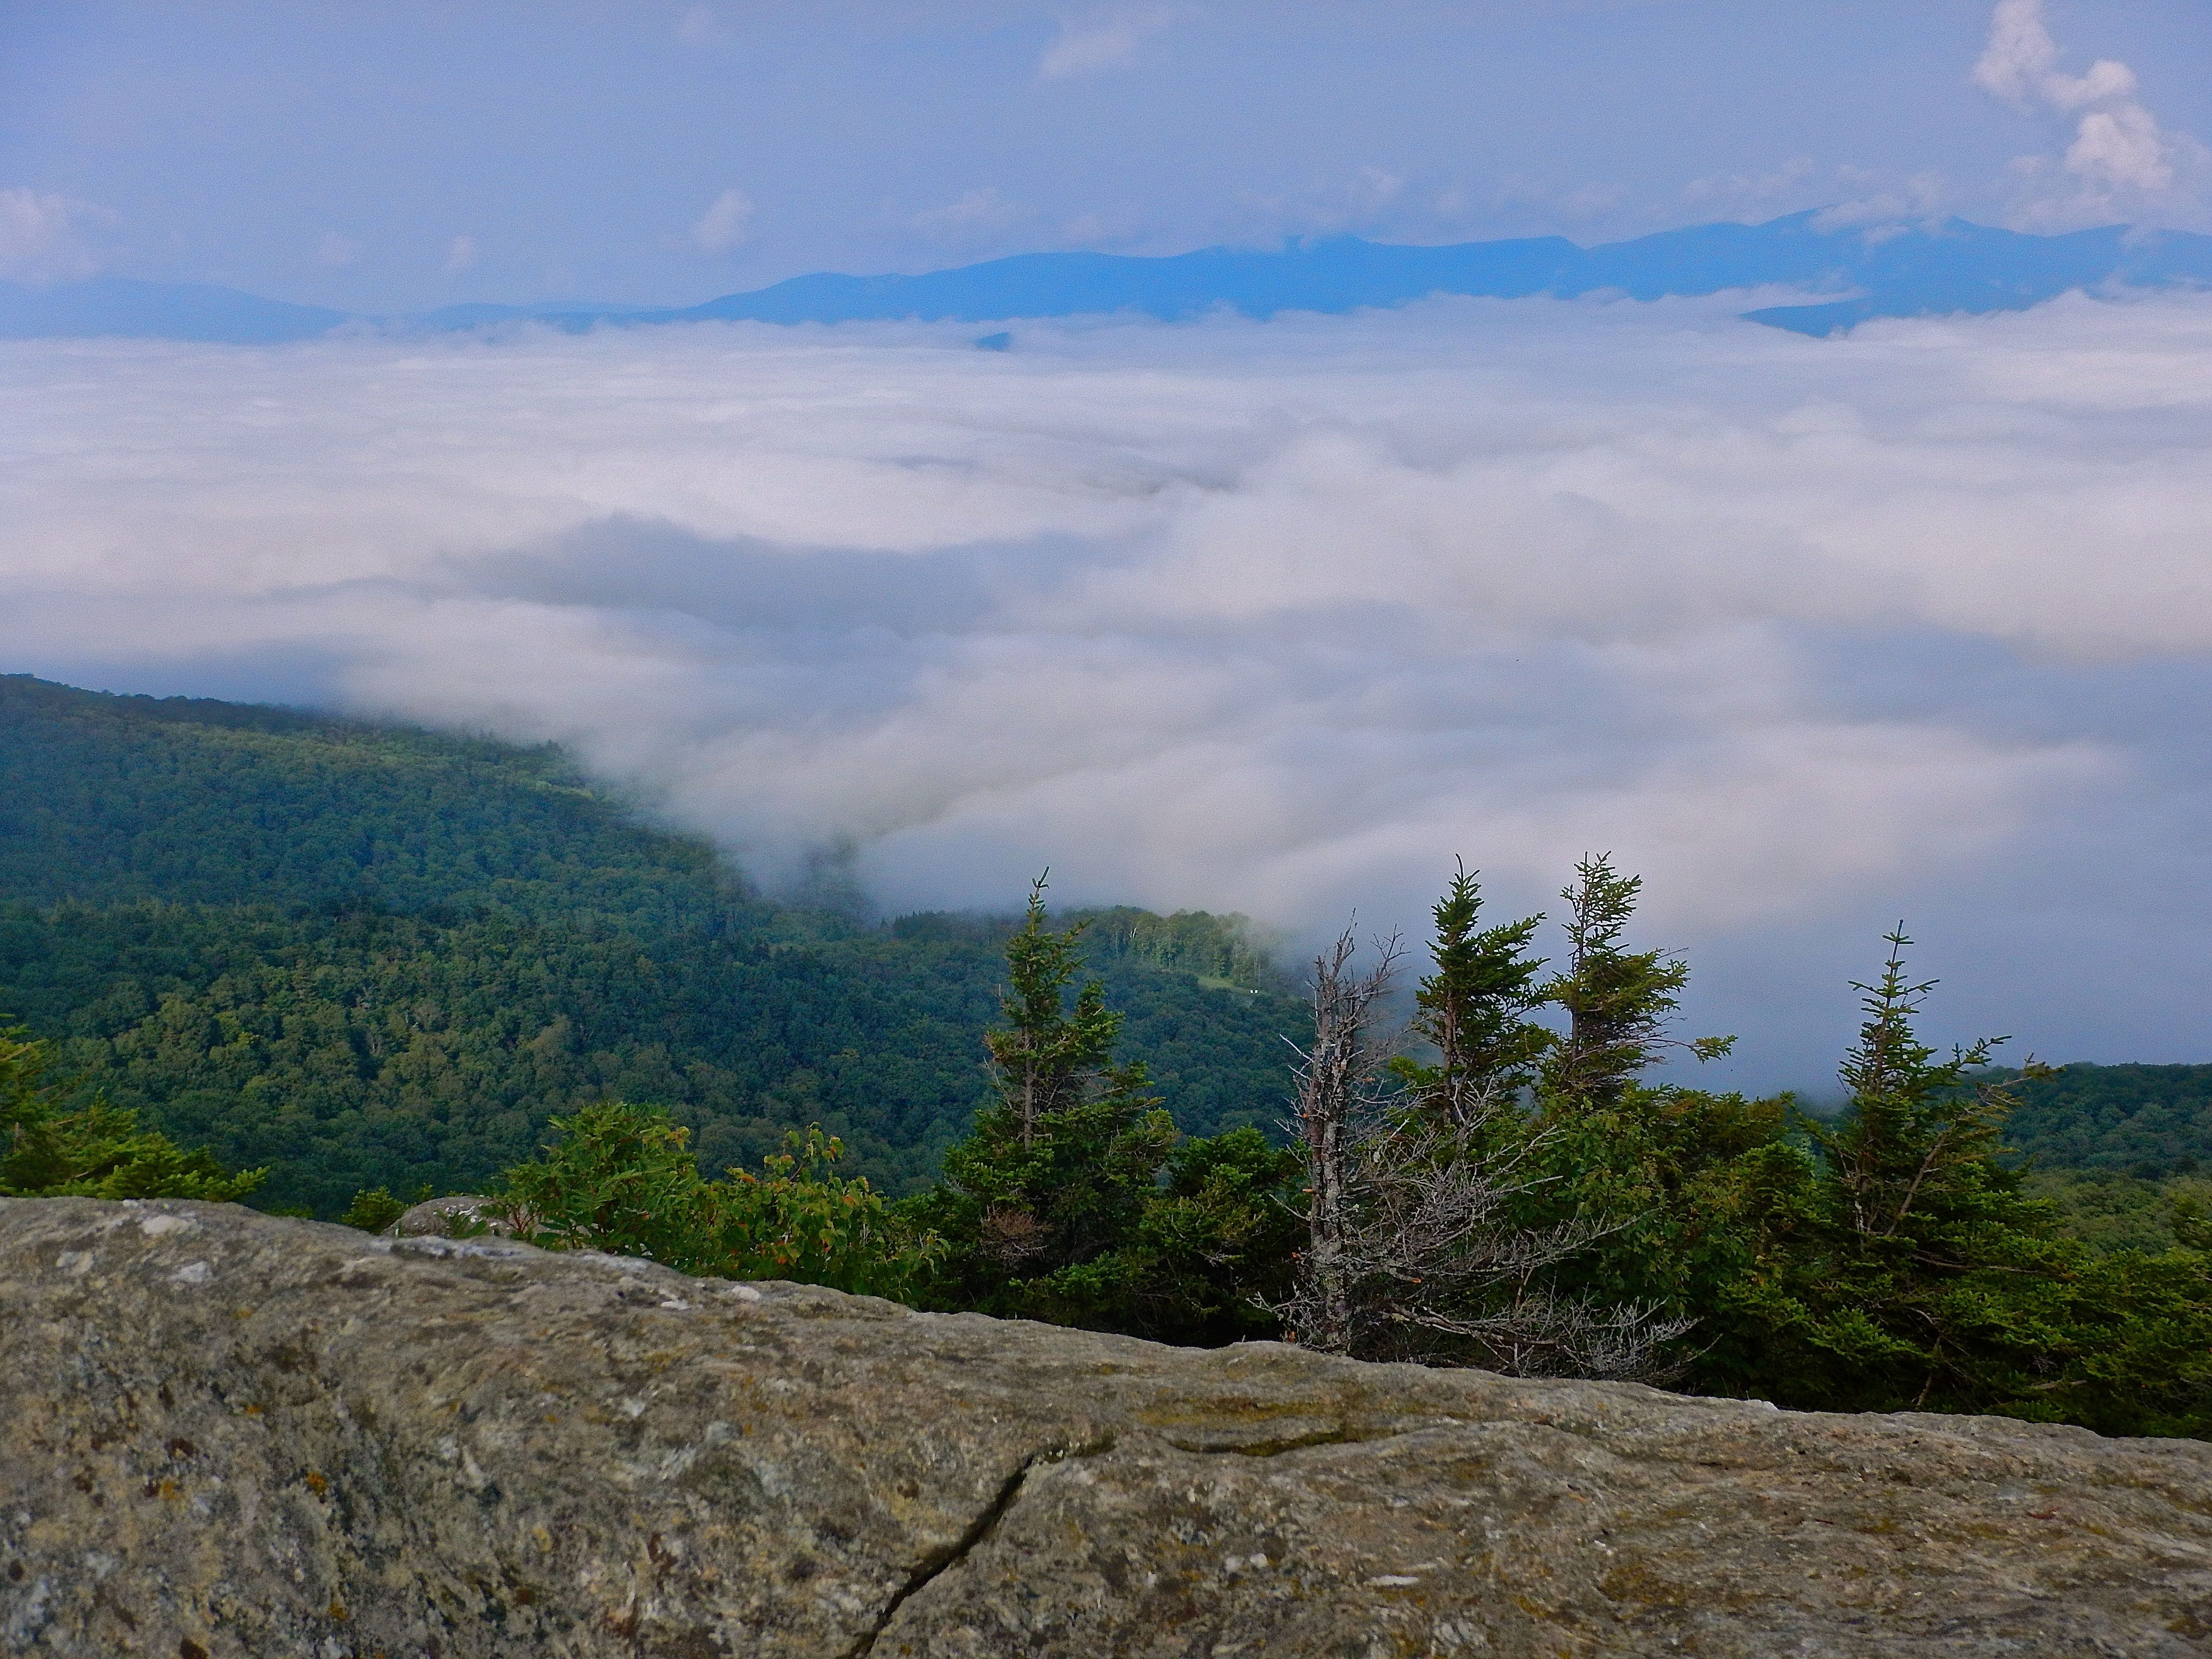 Caption: Undercast From Stowe Pinnacle, Credit: Brian Aust